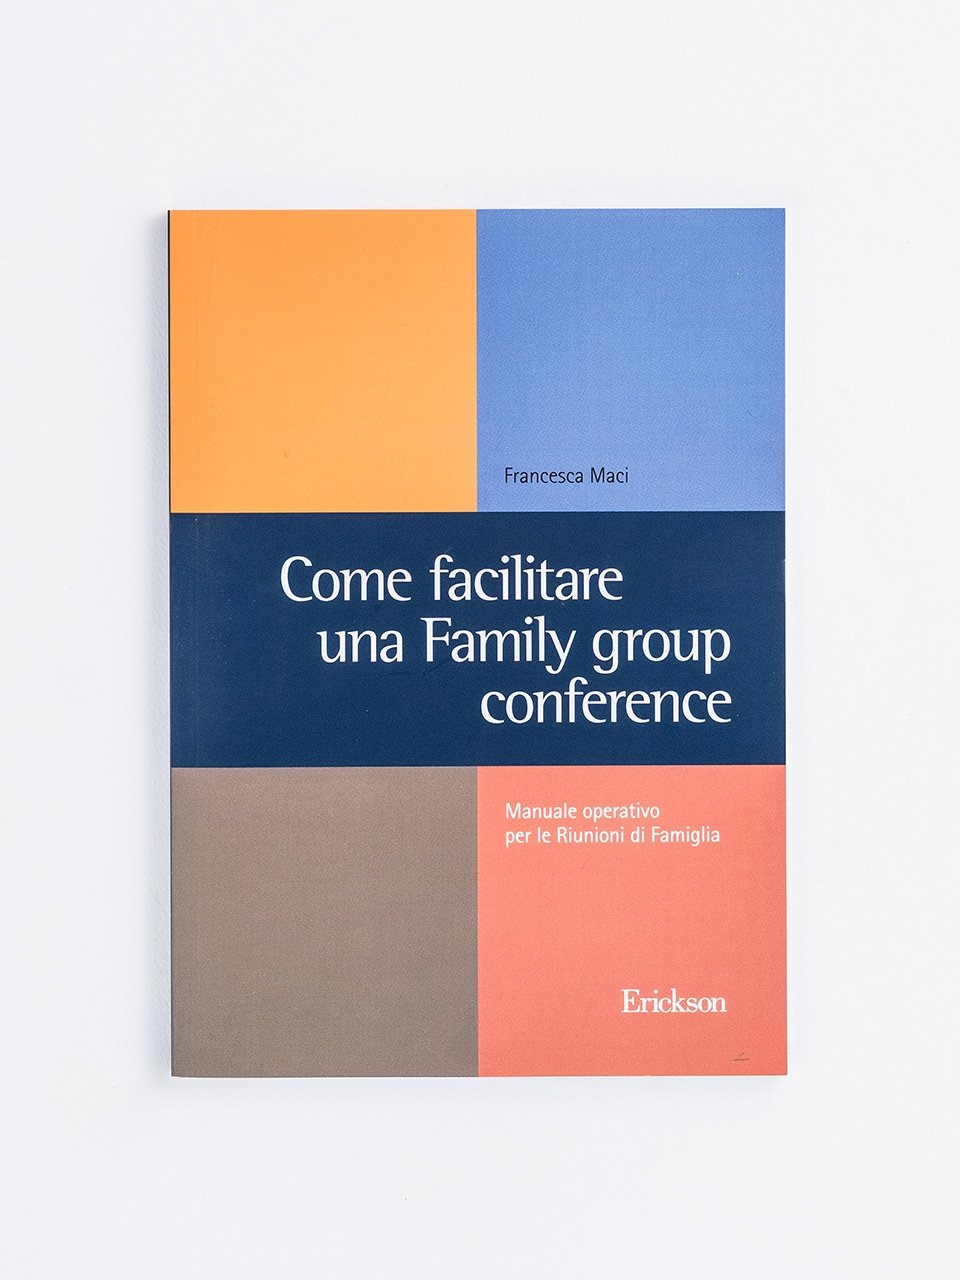 Come facilitare una Family group conference - Lavoro sociale - Riviste - Erickson